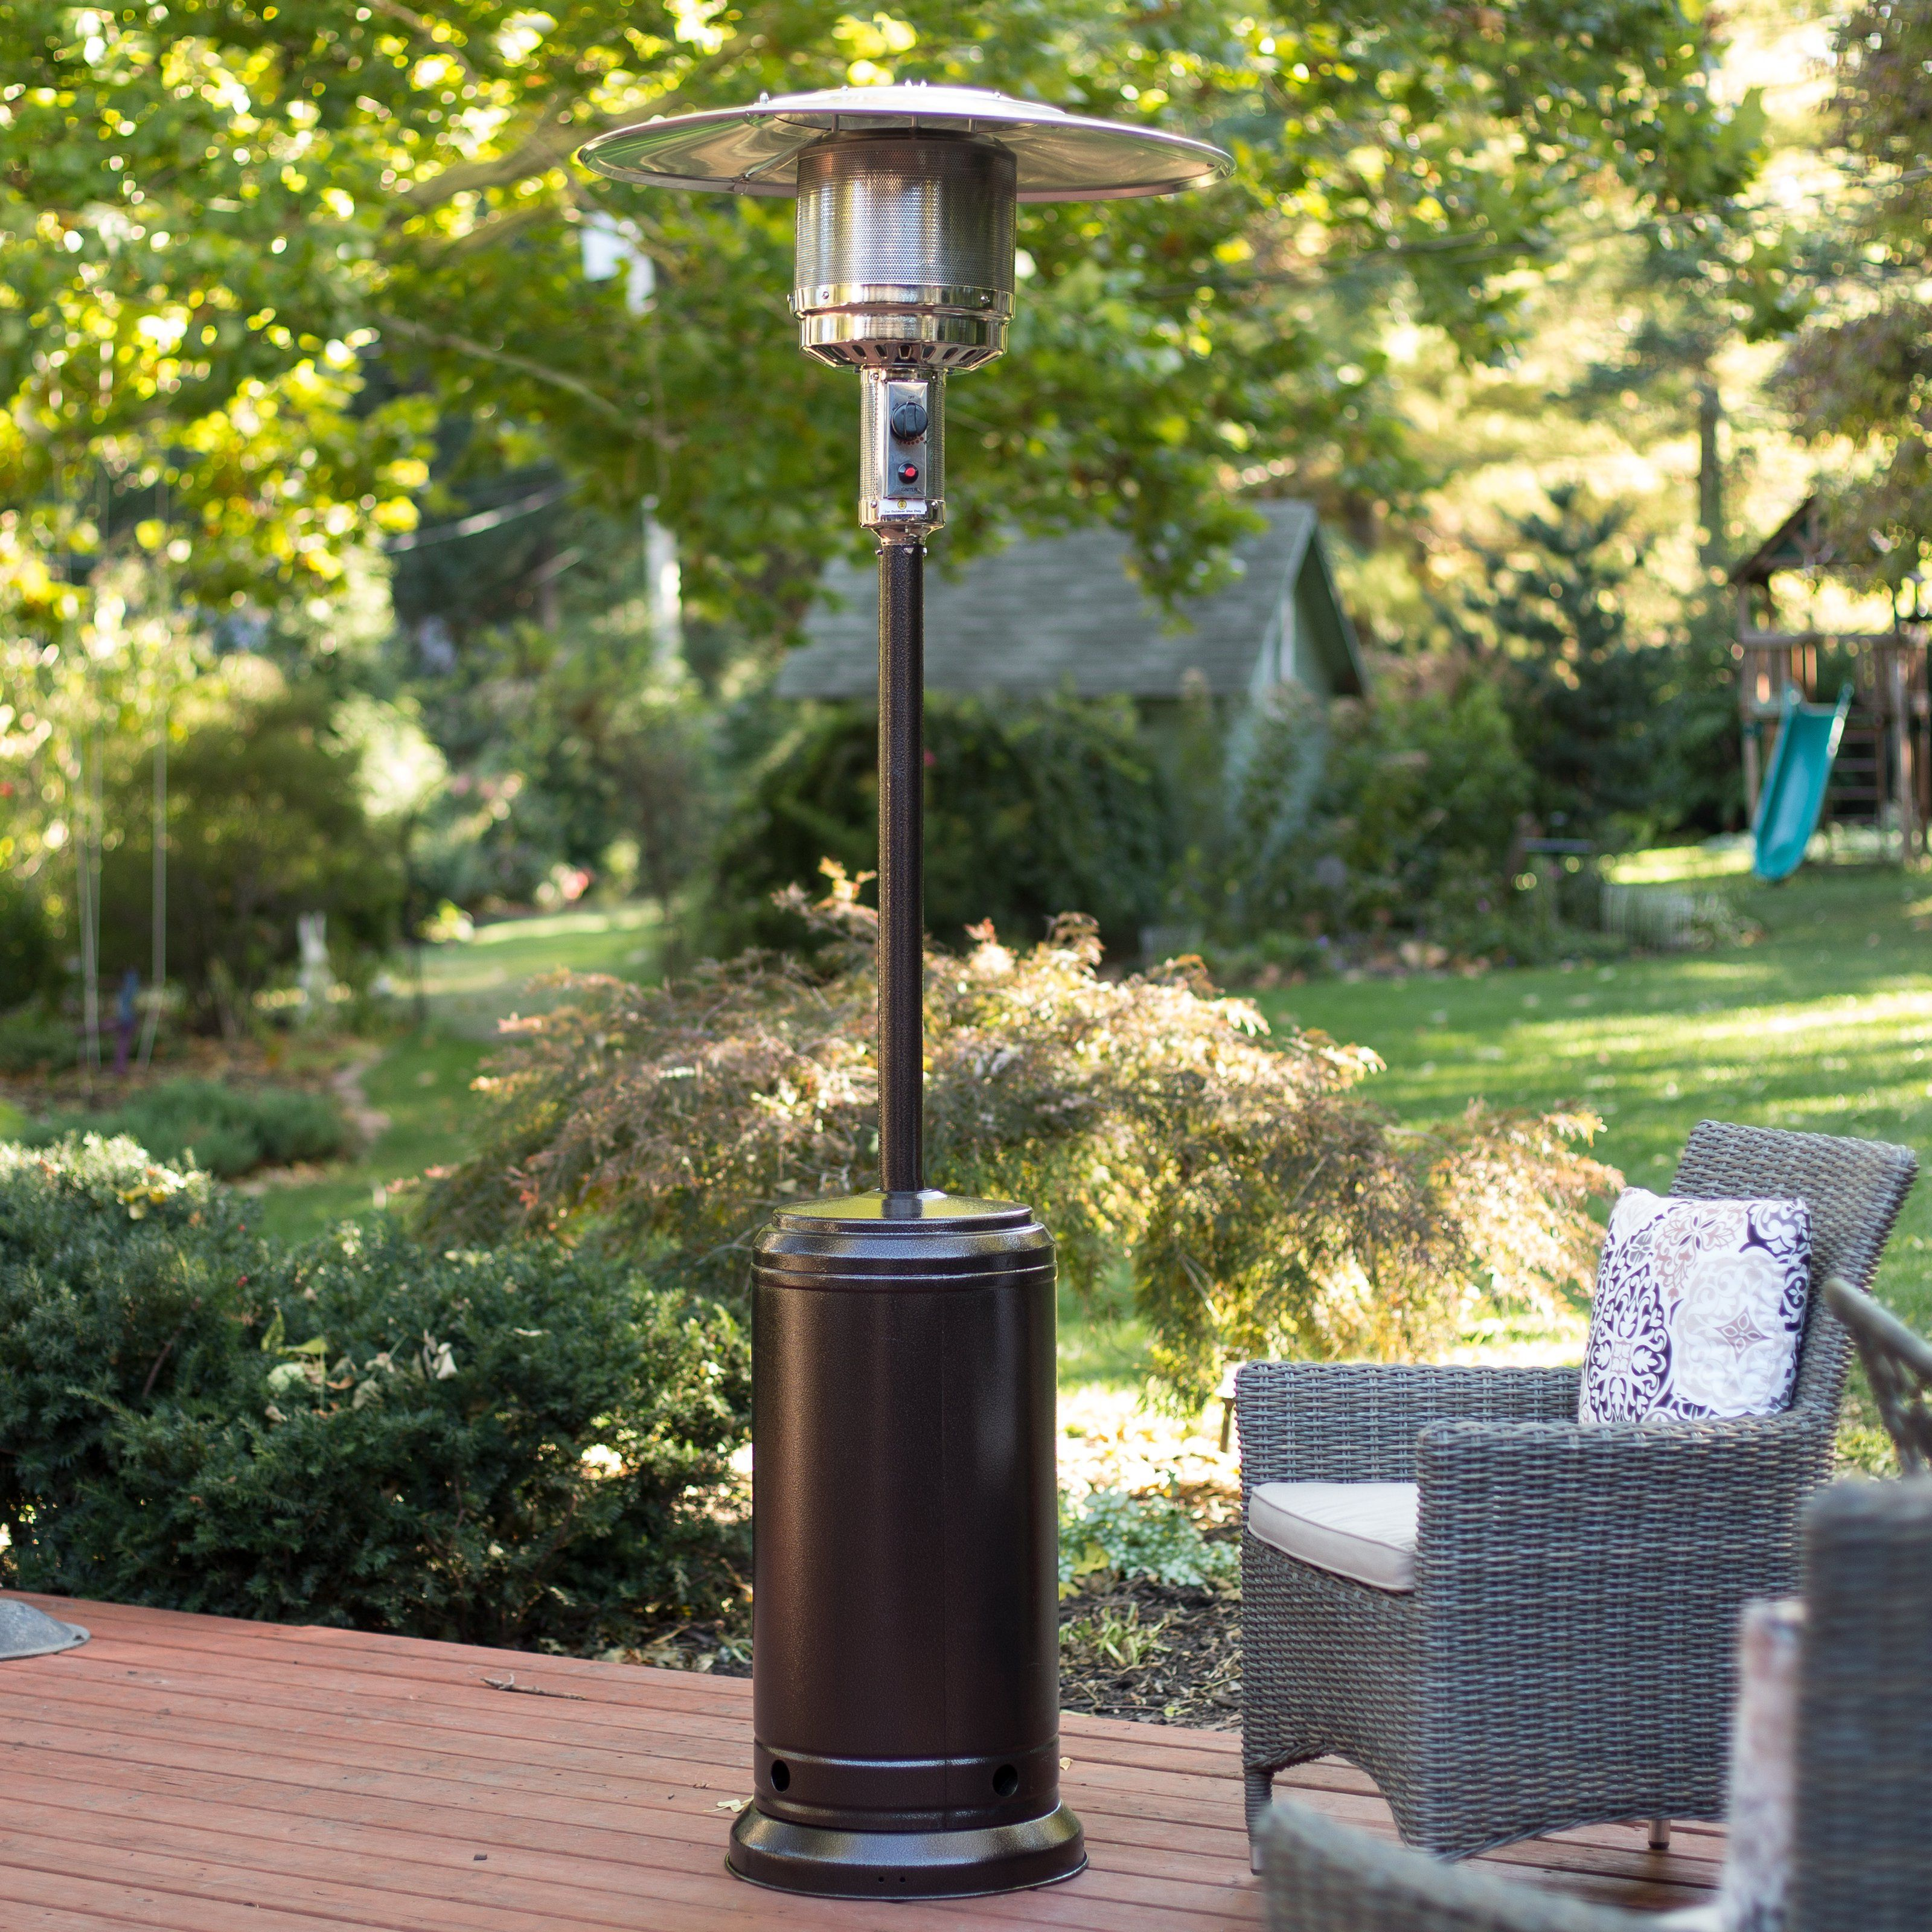 Captivating Fire Sense Hammered Bronze Patio Heater   Smart Spaces Heat Up With The  Fire Sense Hammered Bronze Patio Heater. Featuring A Wheeled Design For  Easy ...